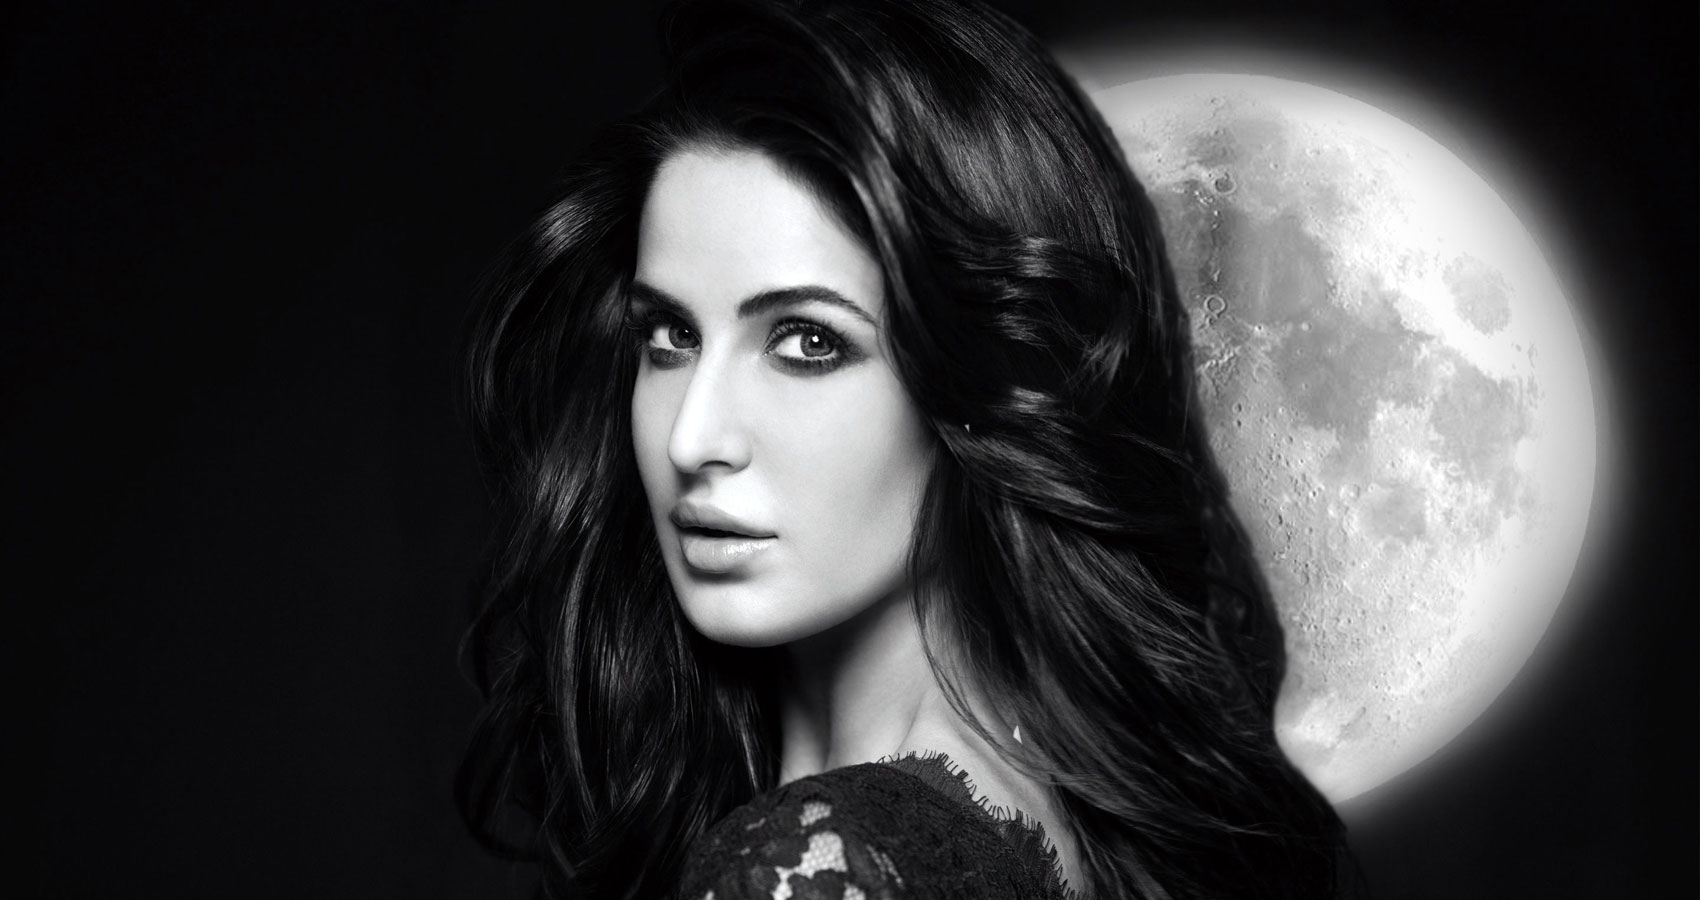 Calling Me by Aaron McMillan at Spillwords.com